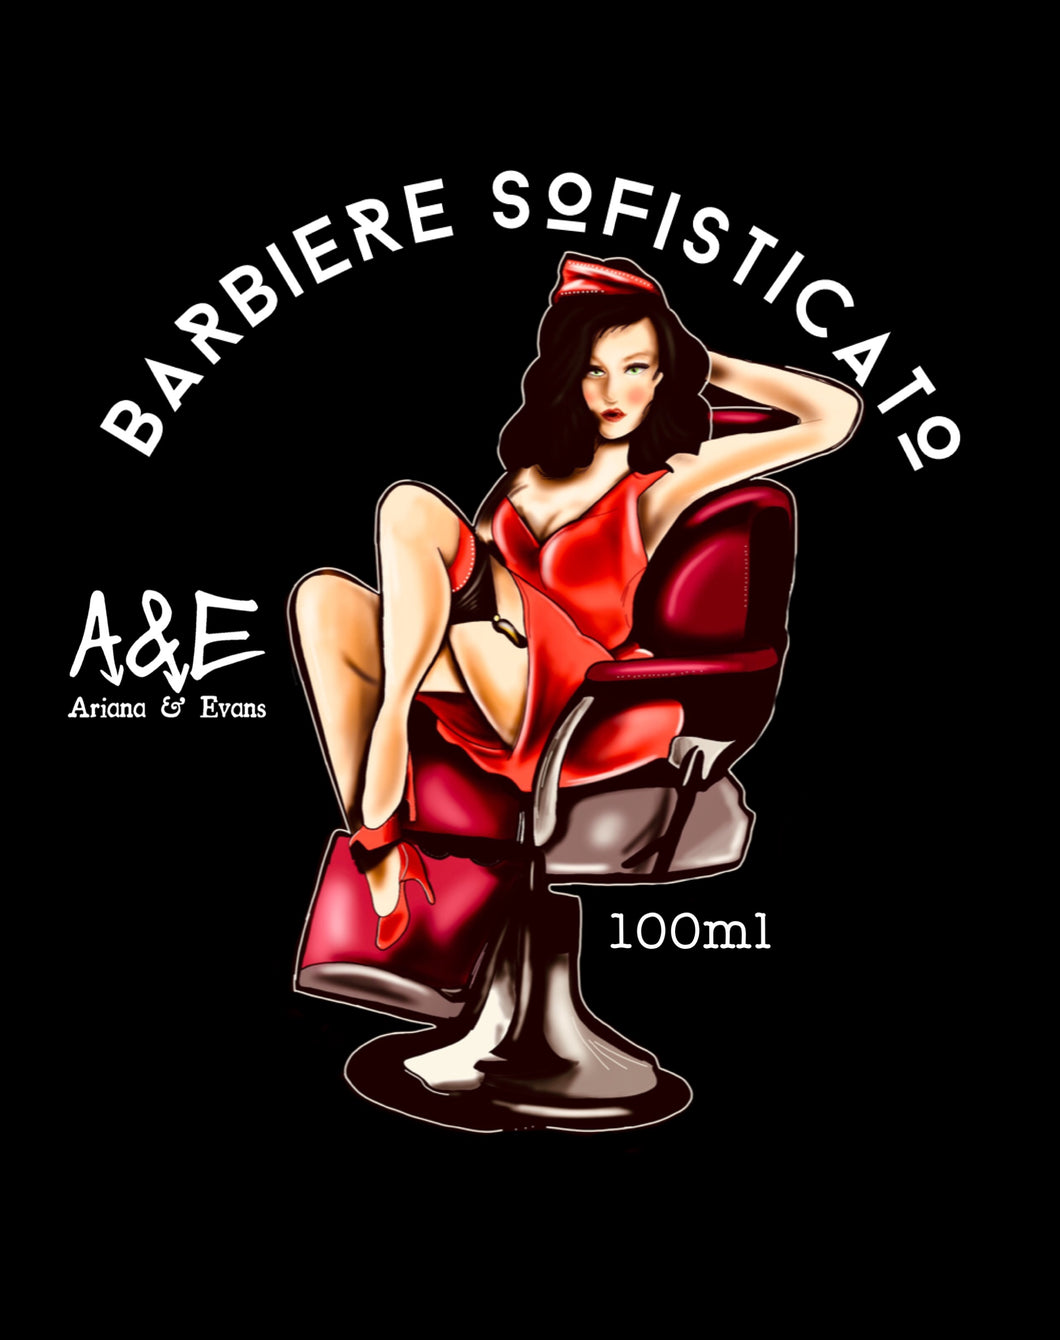 Barbiere Sofisticato Aftershave